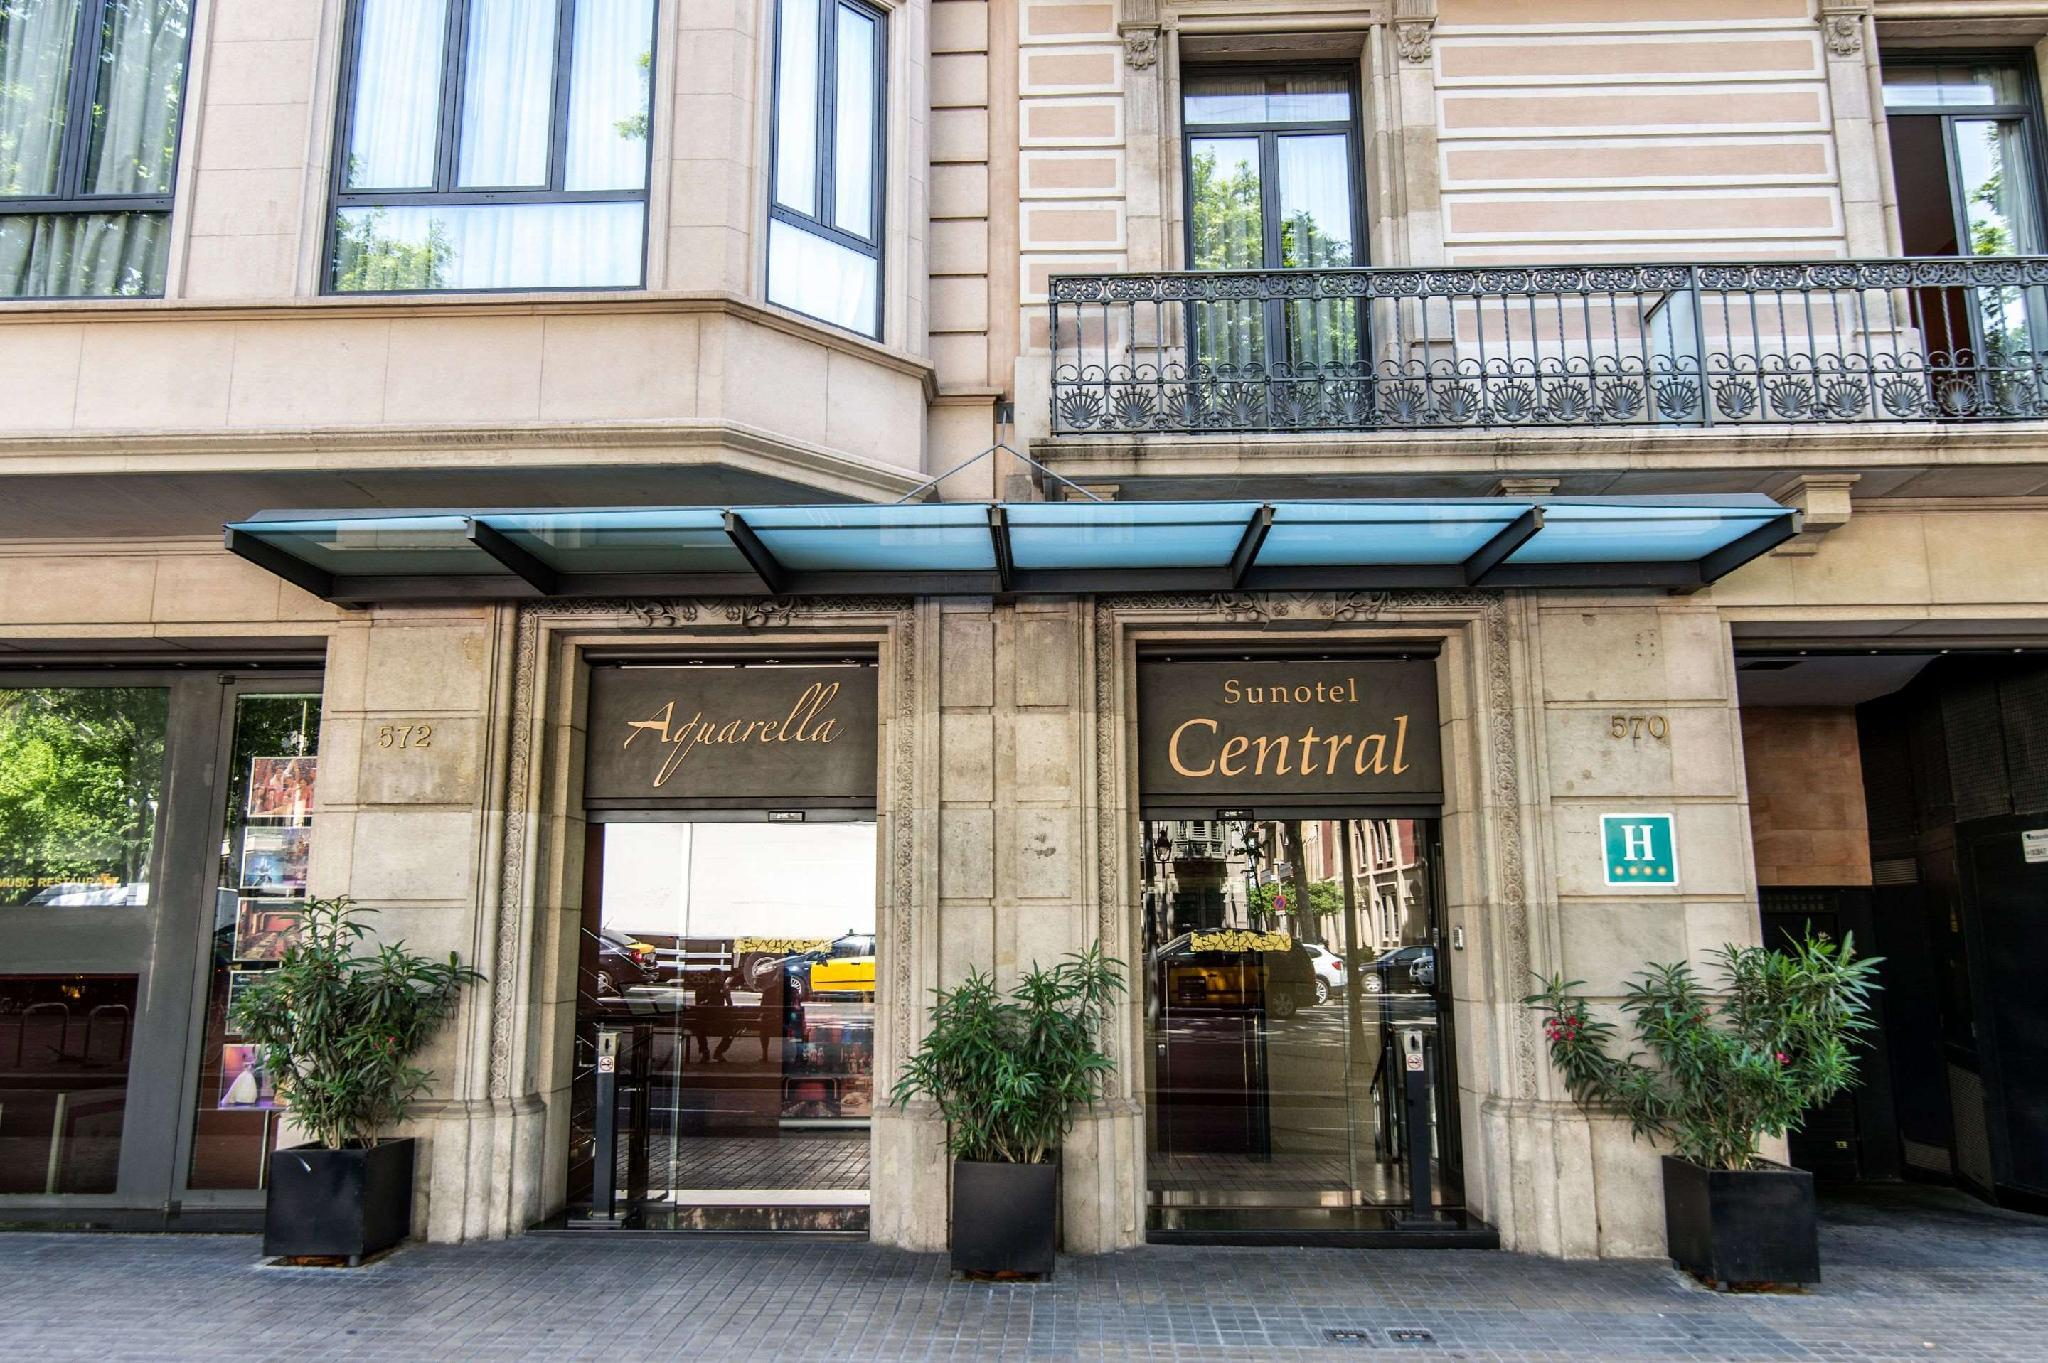 Sunotel Central Hotel